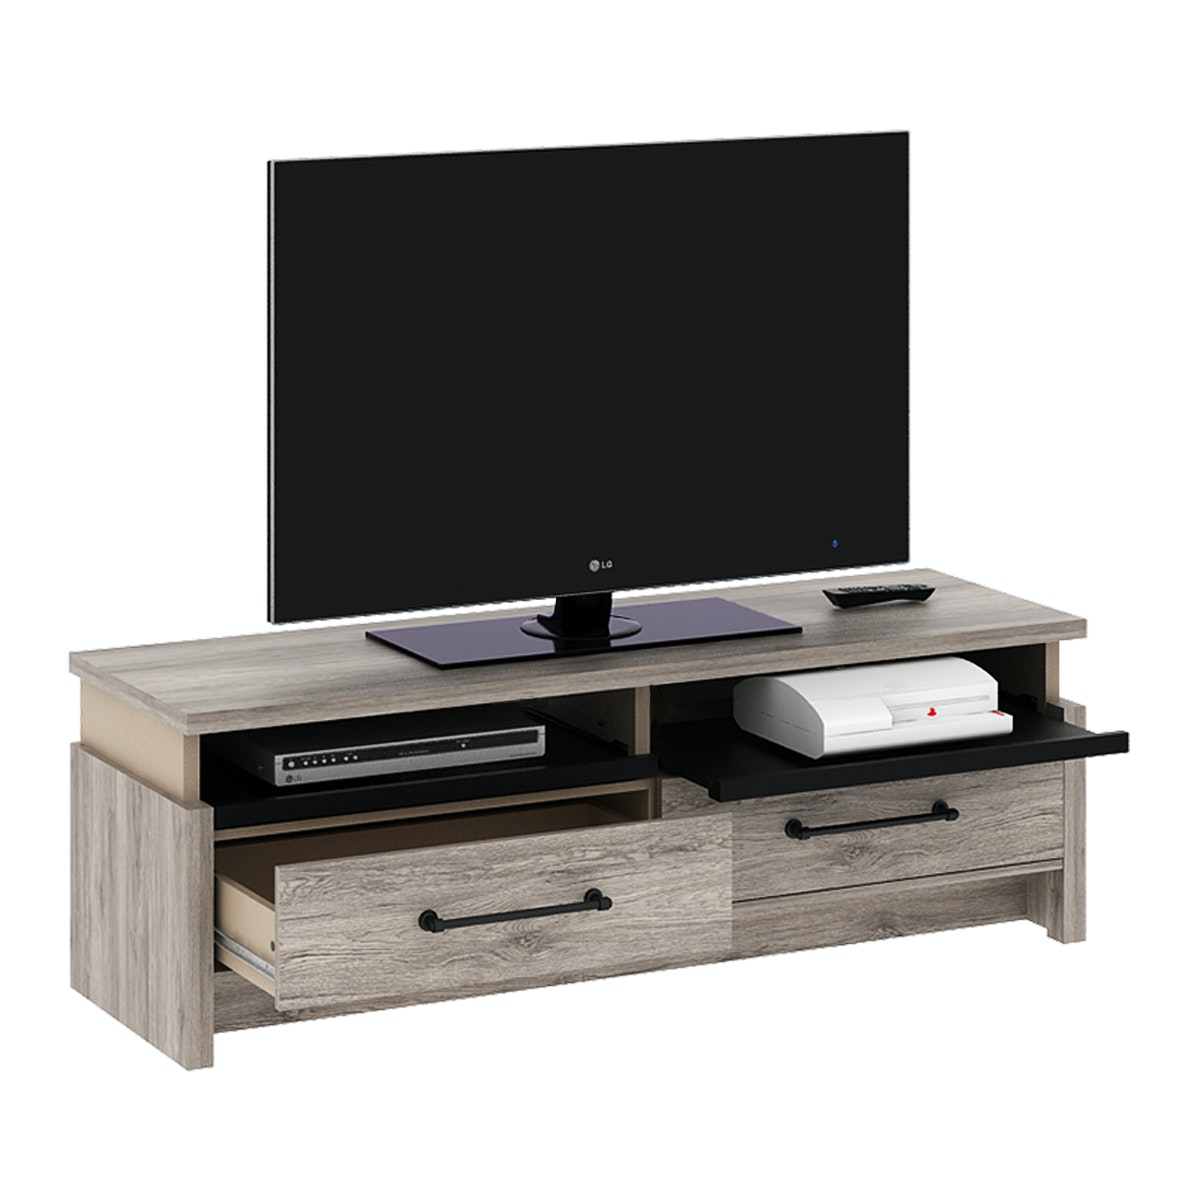 Pro Design Romanov Rak TV 2 Laci - Sanremo Dark - Beige Leather - Black